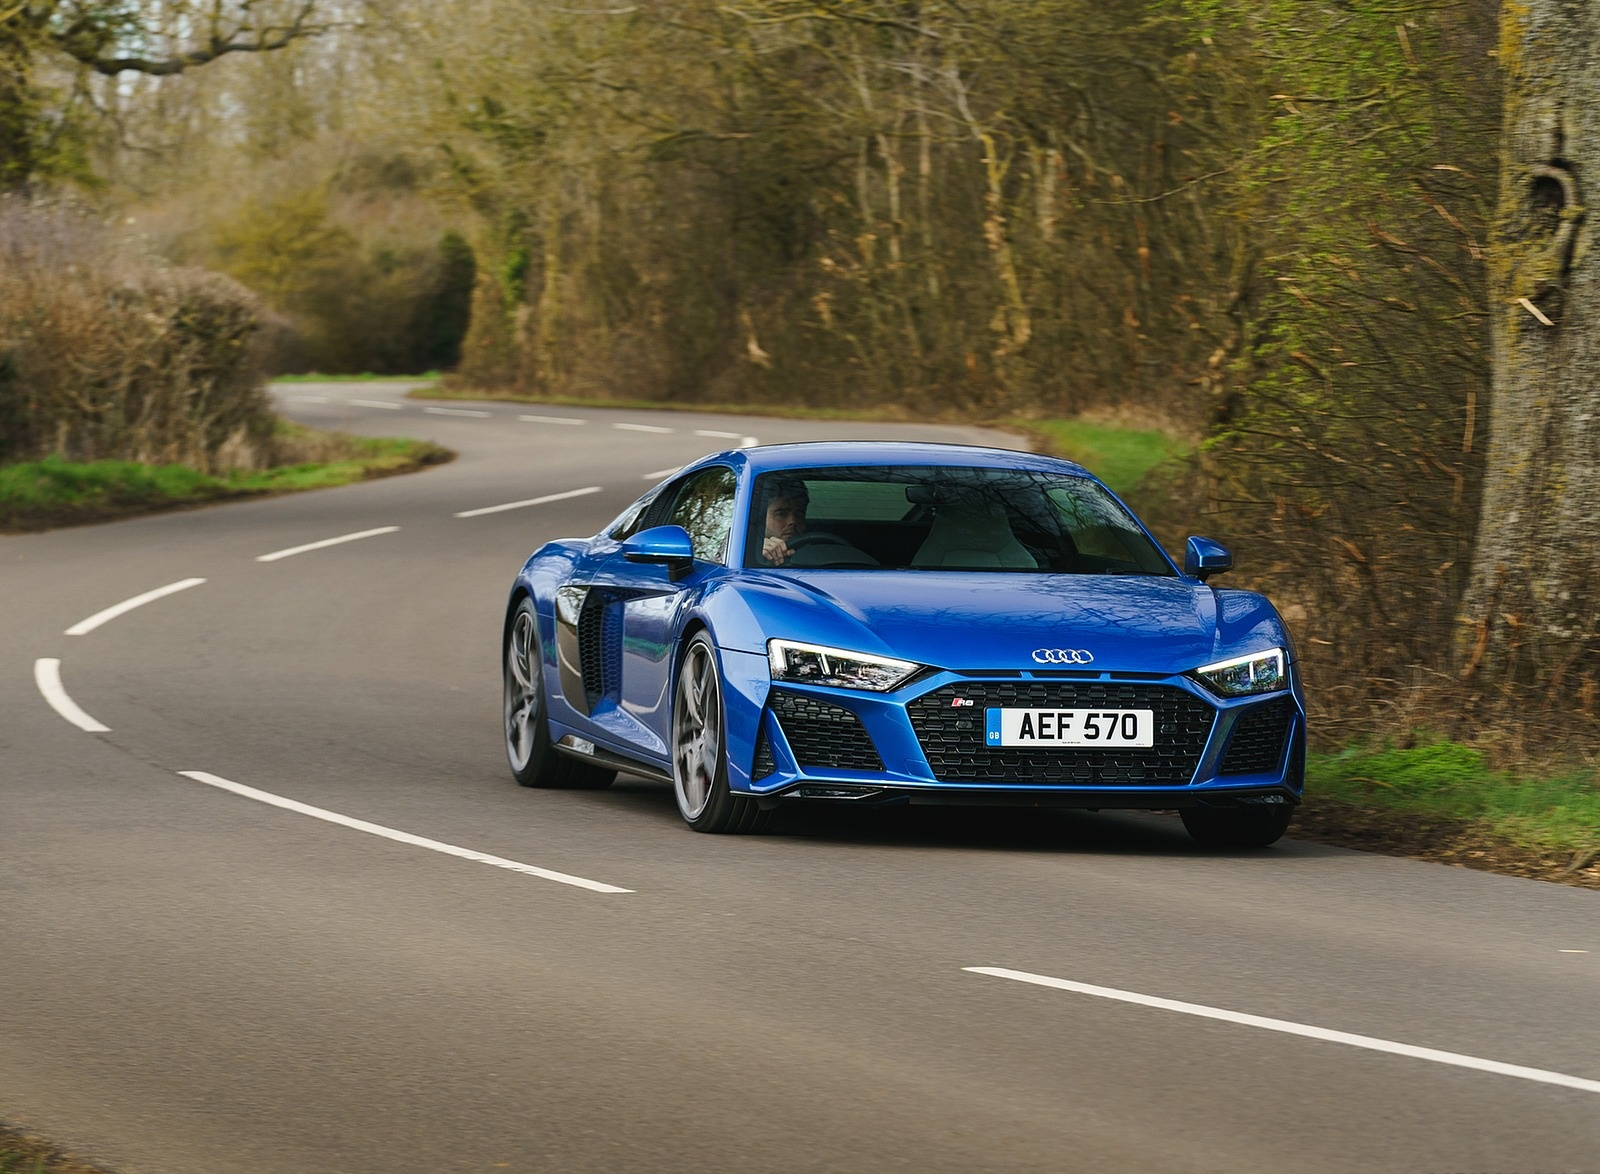 2019 Audi R8 V10 Coupe quattro (UK-Spec) Front Three-Quarter Wallpaper (15)